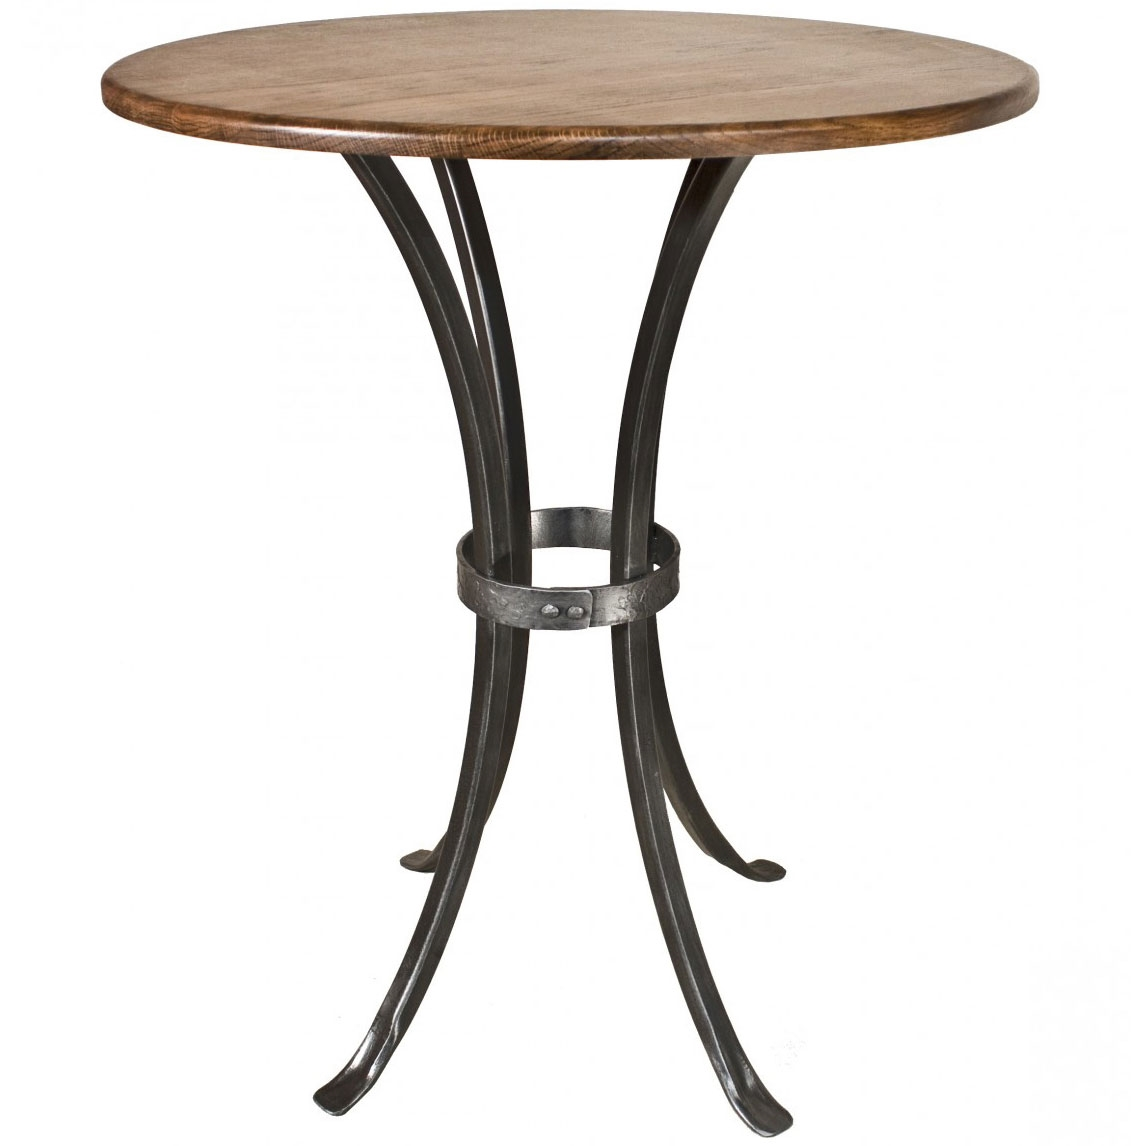 Wrought Iron Bar Table Montage Height 30